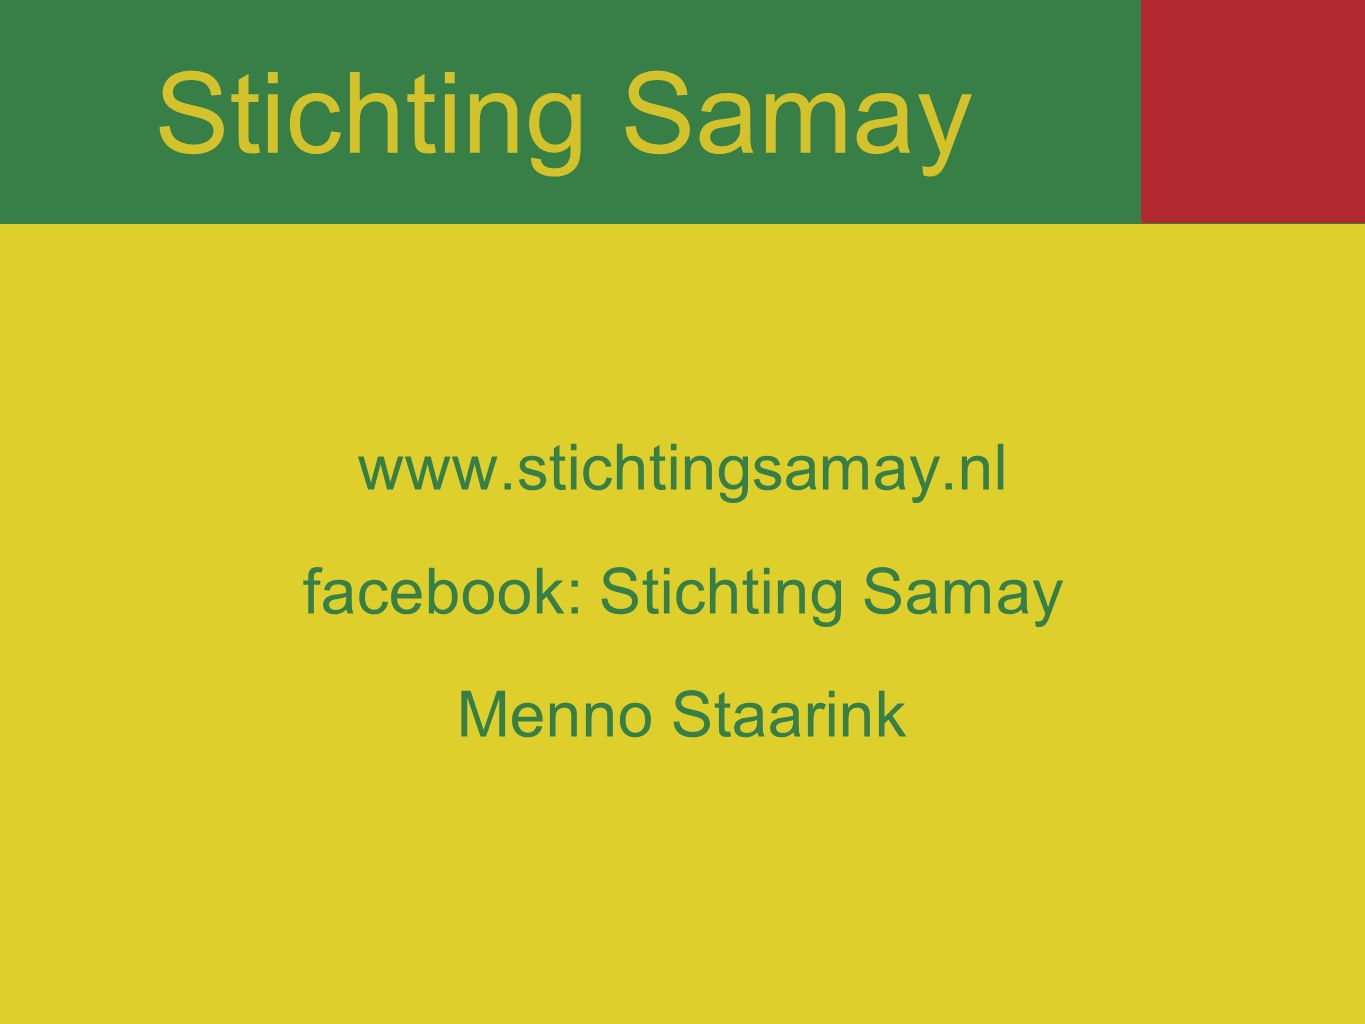 www.stichtingsamay.nl facebook: Stichting Samay Menno Staarink Stichting Samay